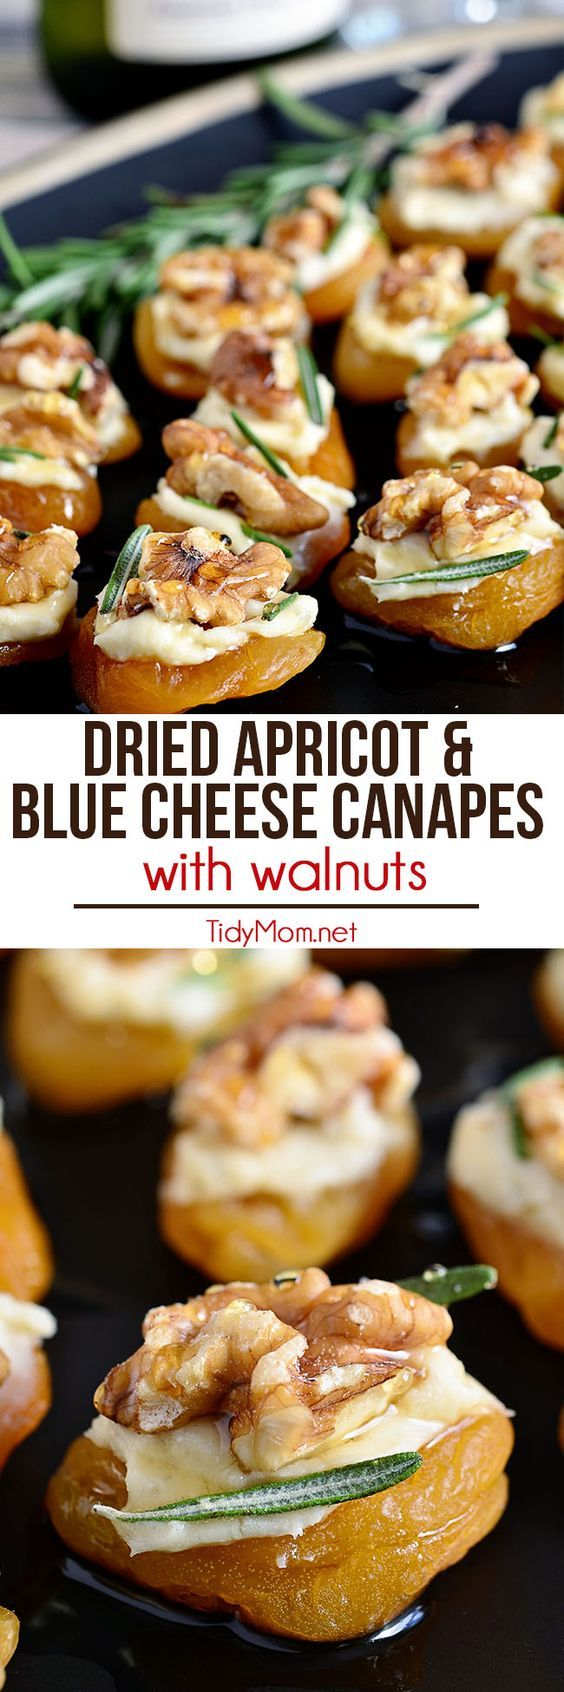 Dried Apricot Blue Cheese Canapes with Walnuts